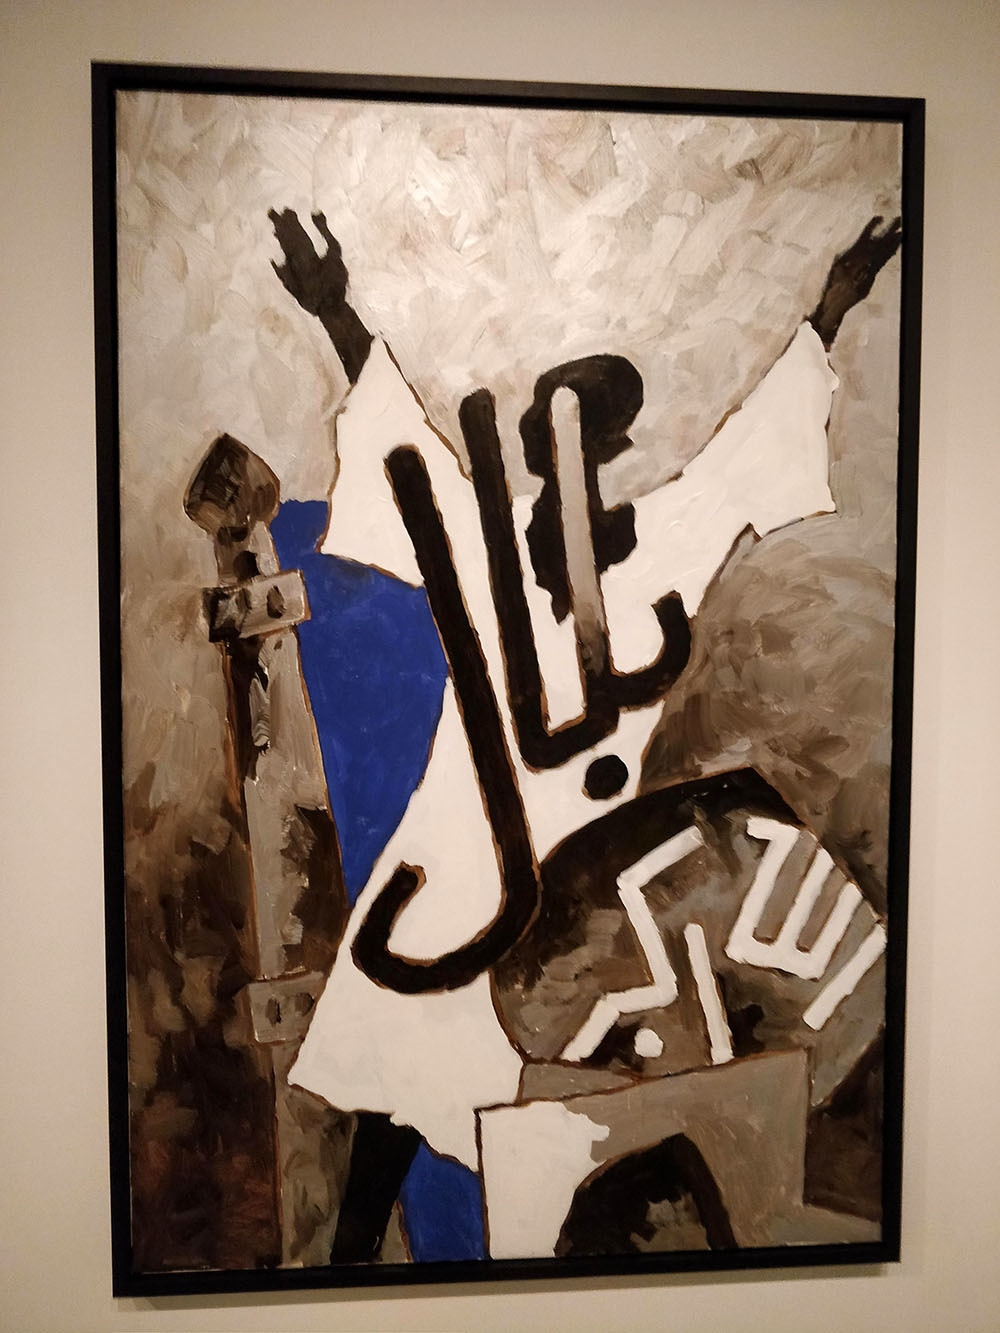 """Bilal ibn Rabah"", 2008. Acrylic on canvas. Qatar Foundation Collection Doha.—Photo by author"